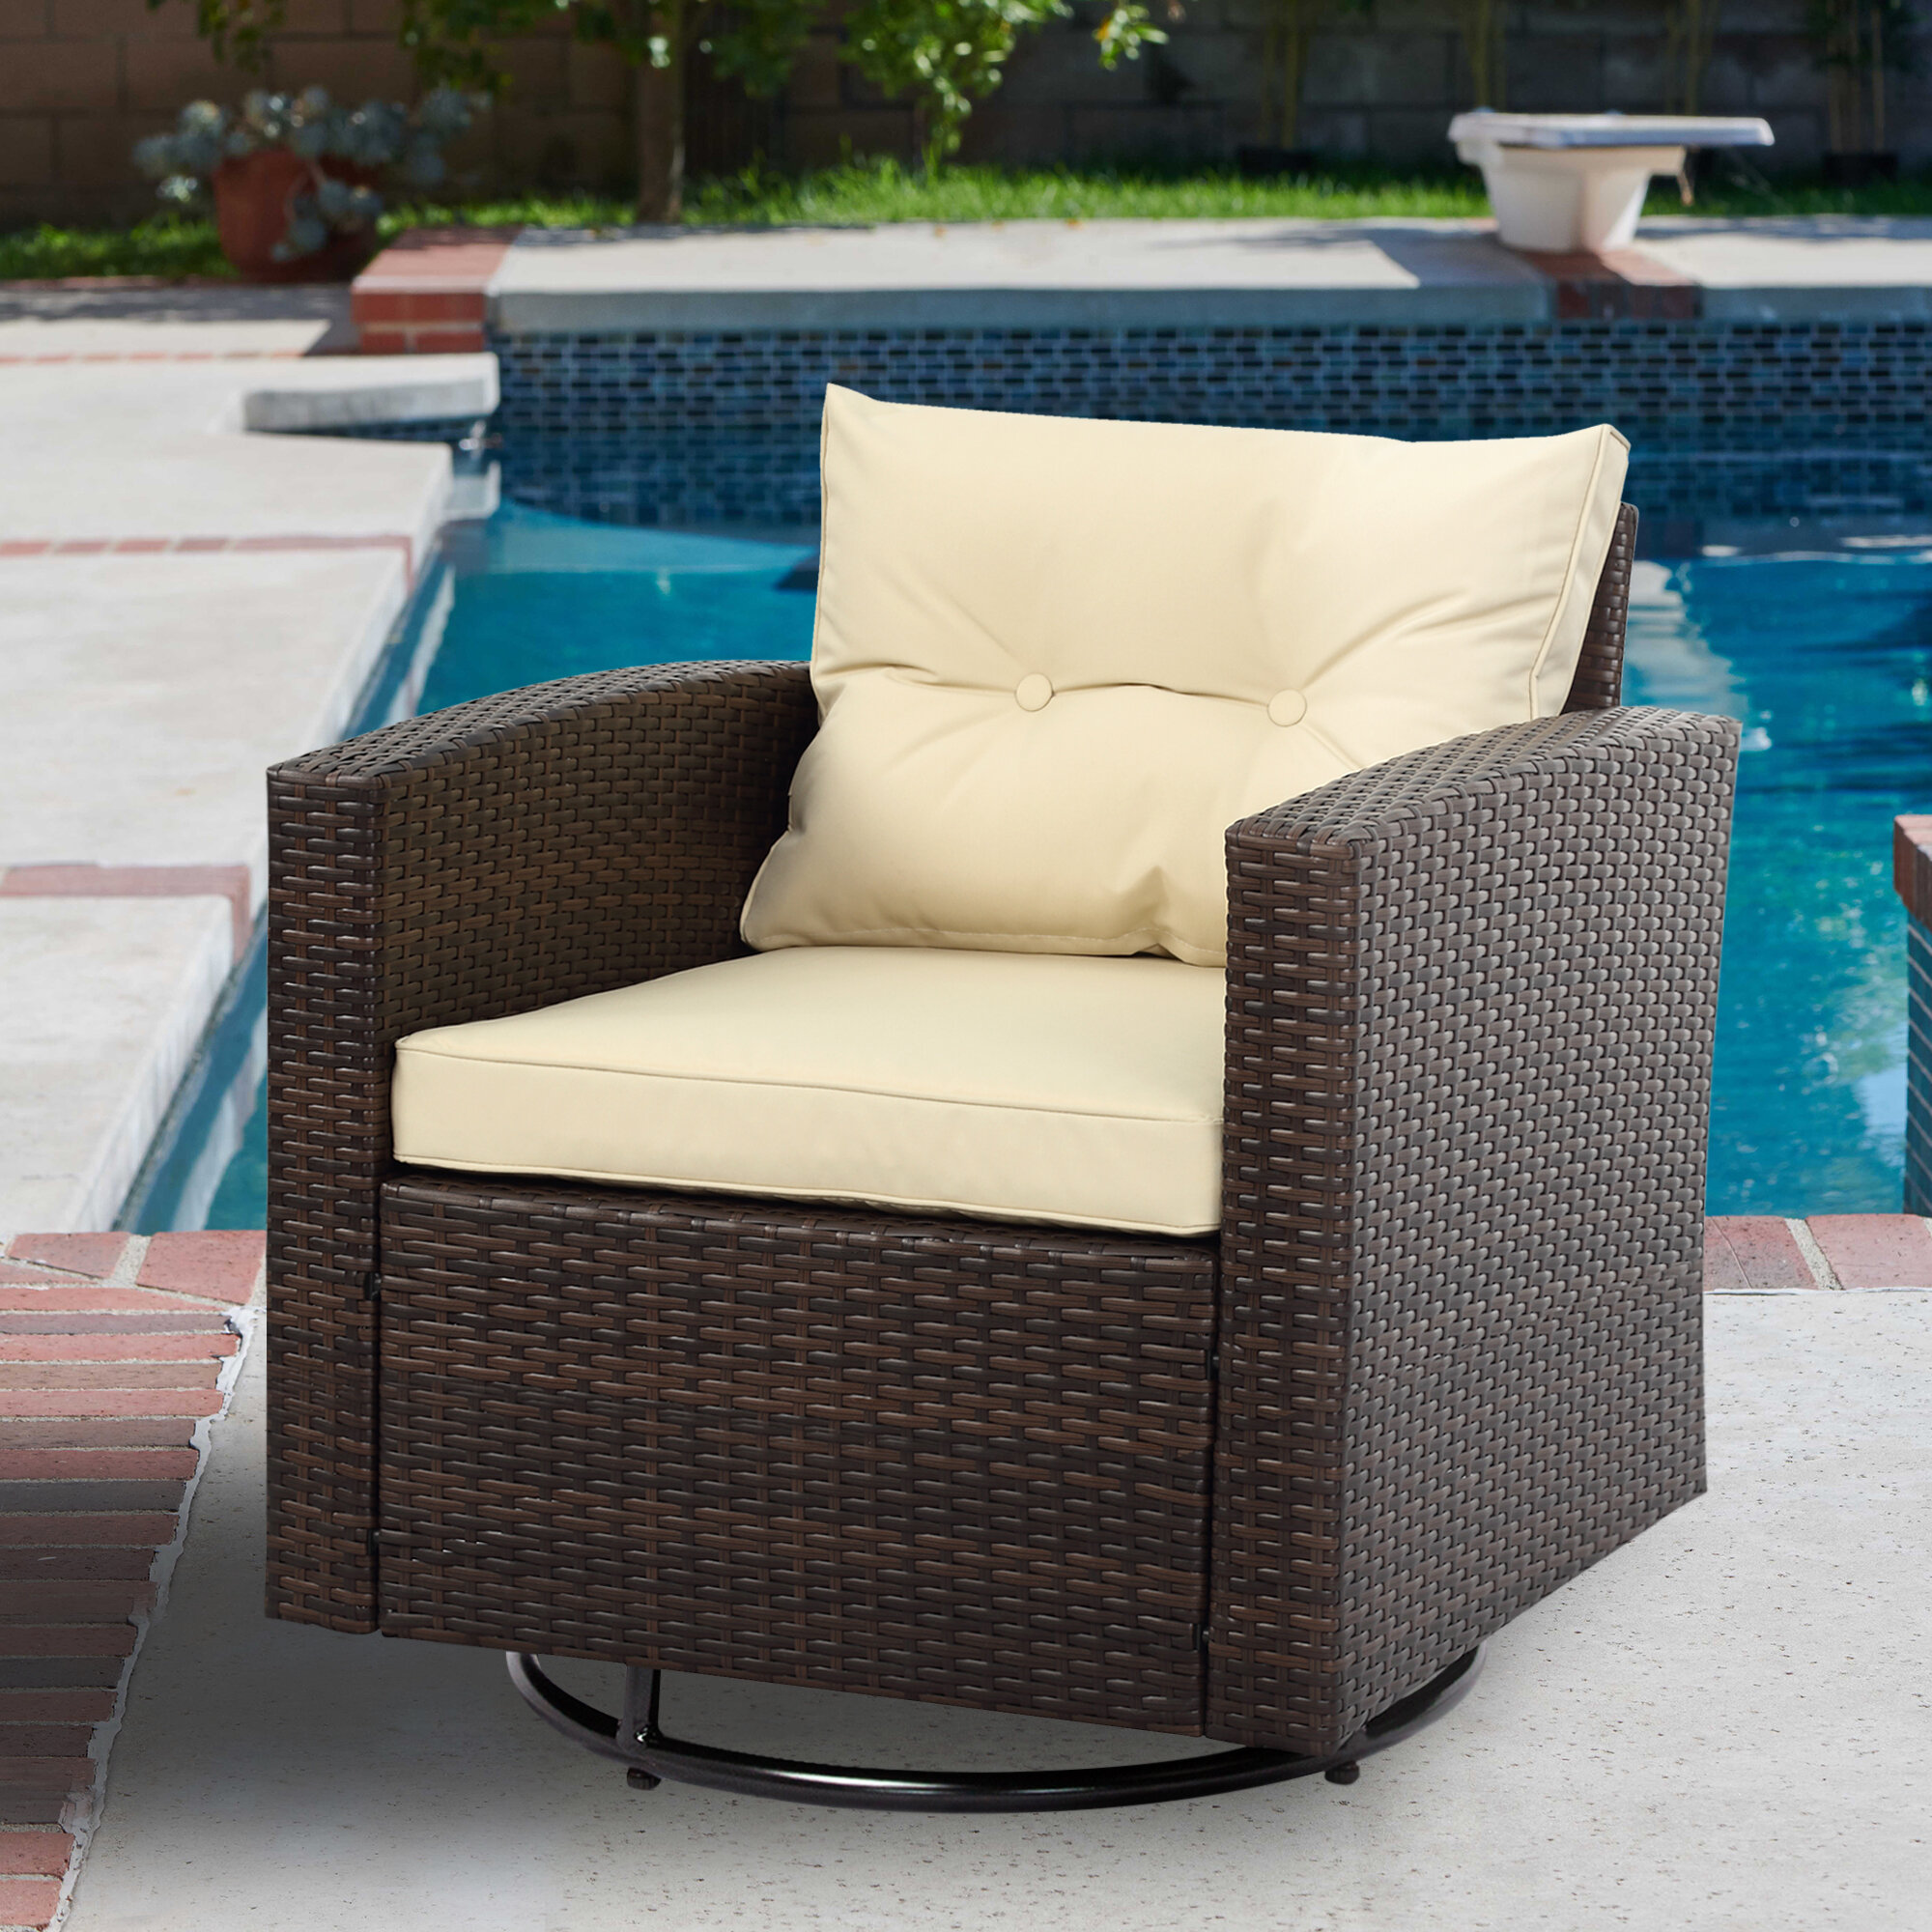 Brilliant Arlington Swivel Patio Chair With Cushions Ncnpc Chair Design For Home Ncnpcorg